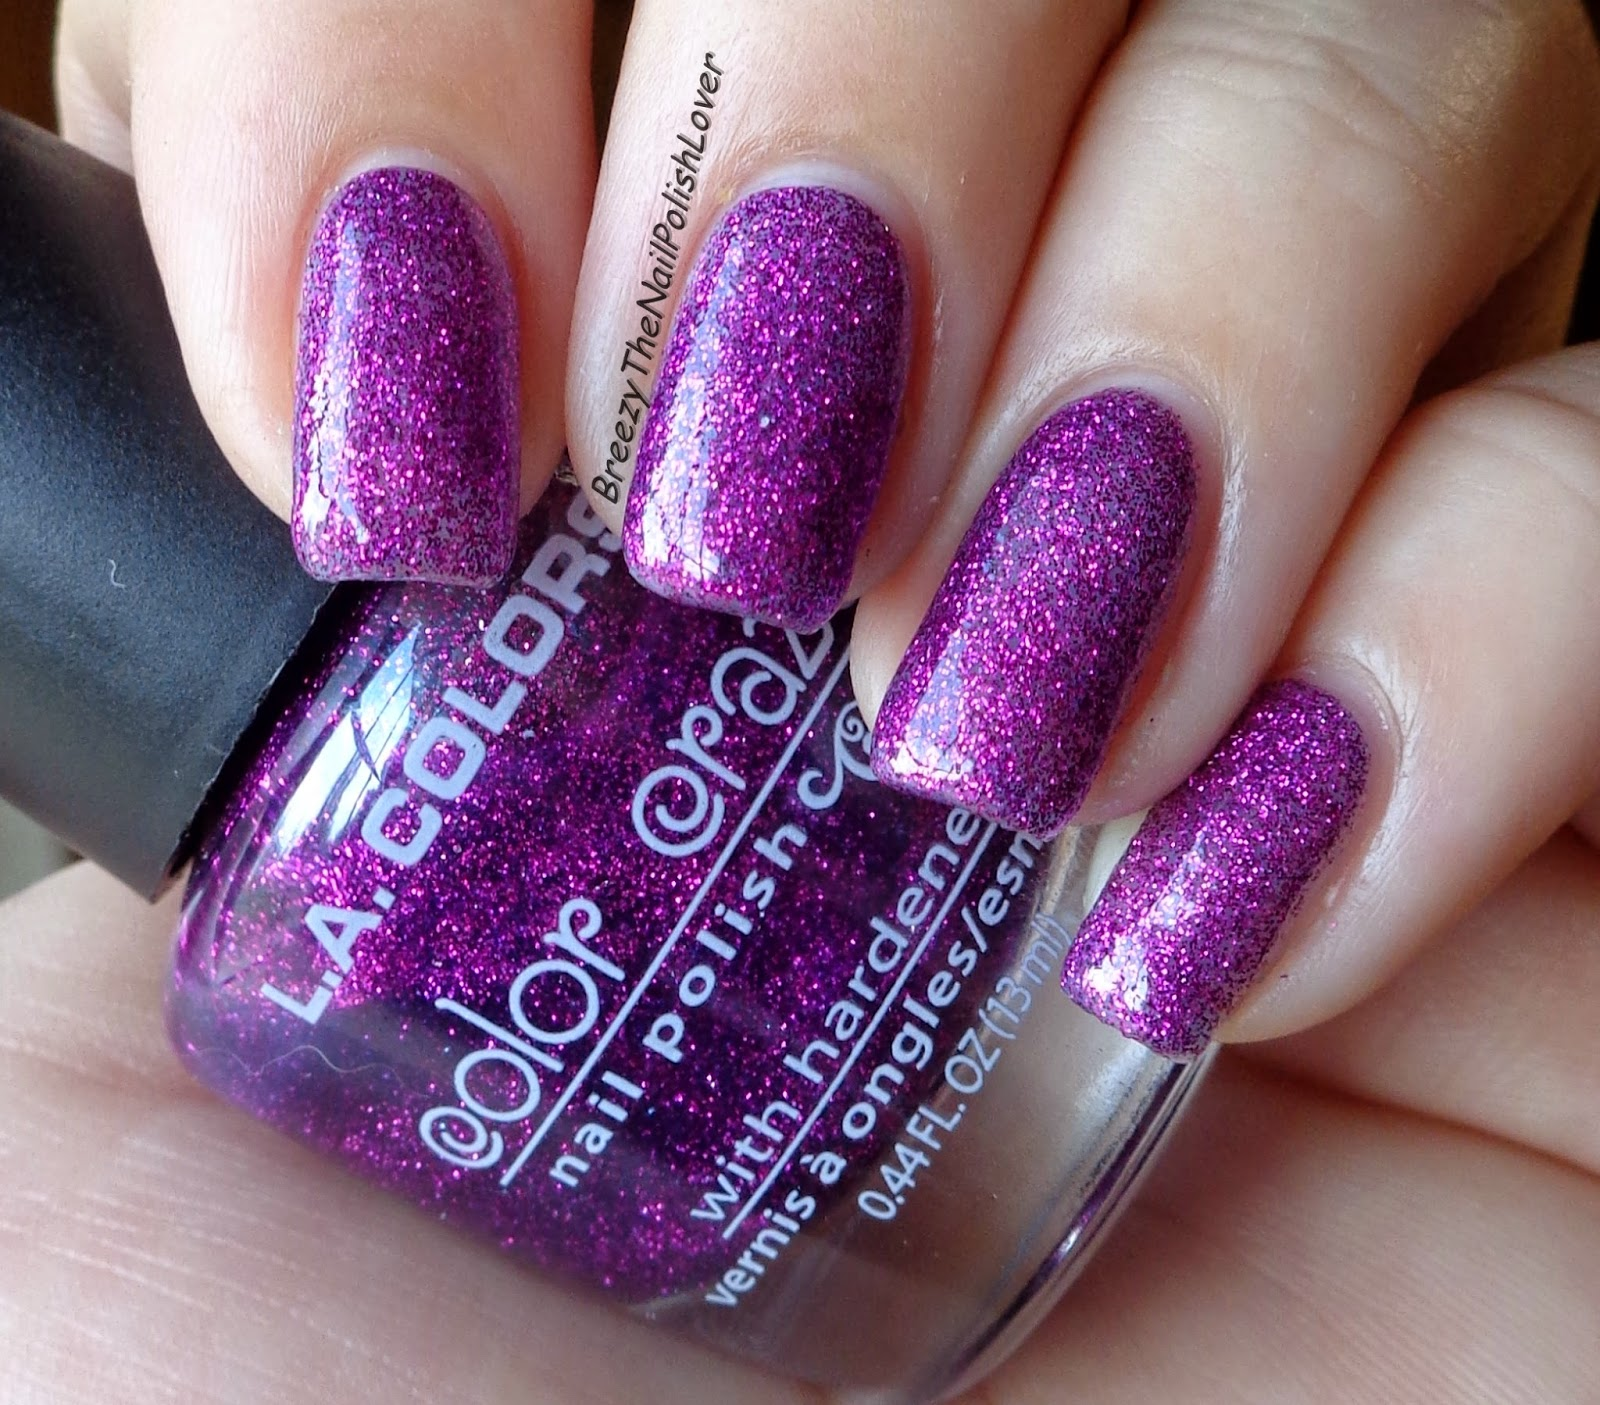 breezythenailpolishlover: new l.a. color nail polish review and